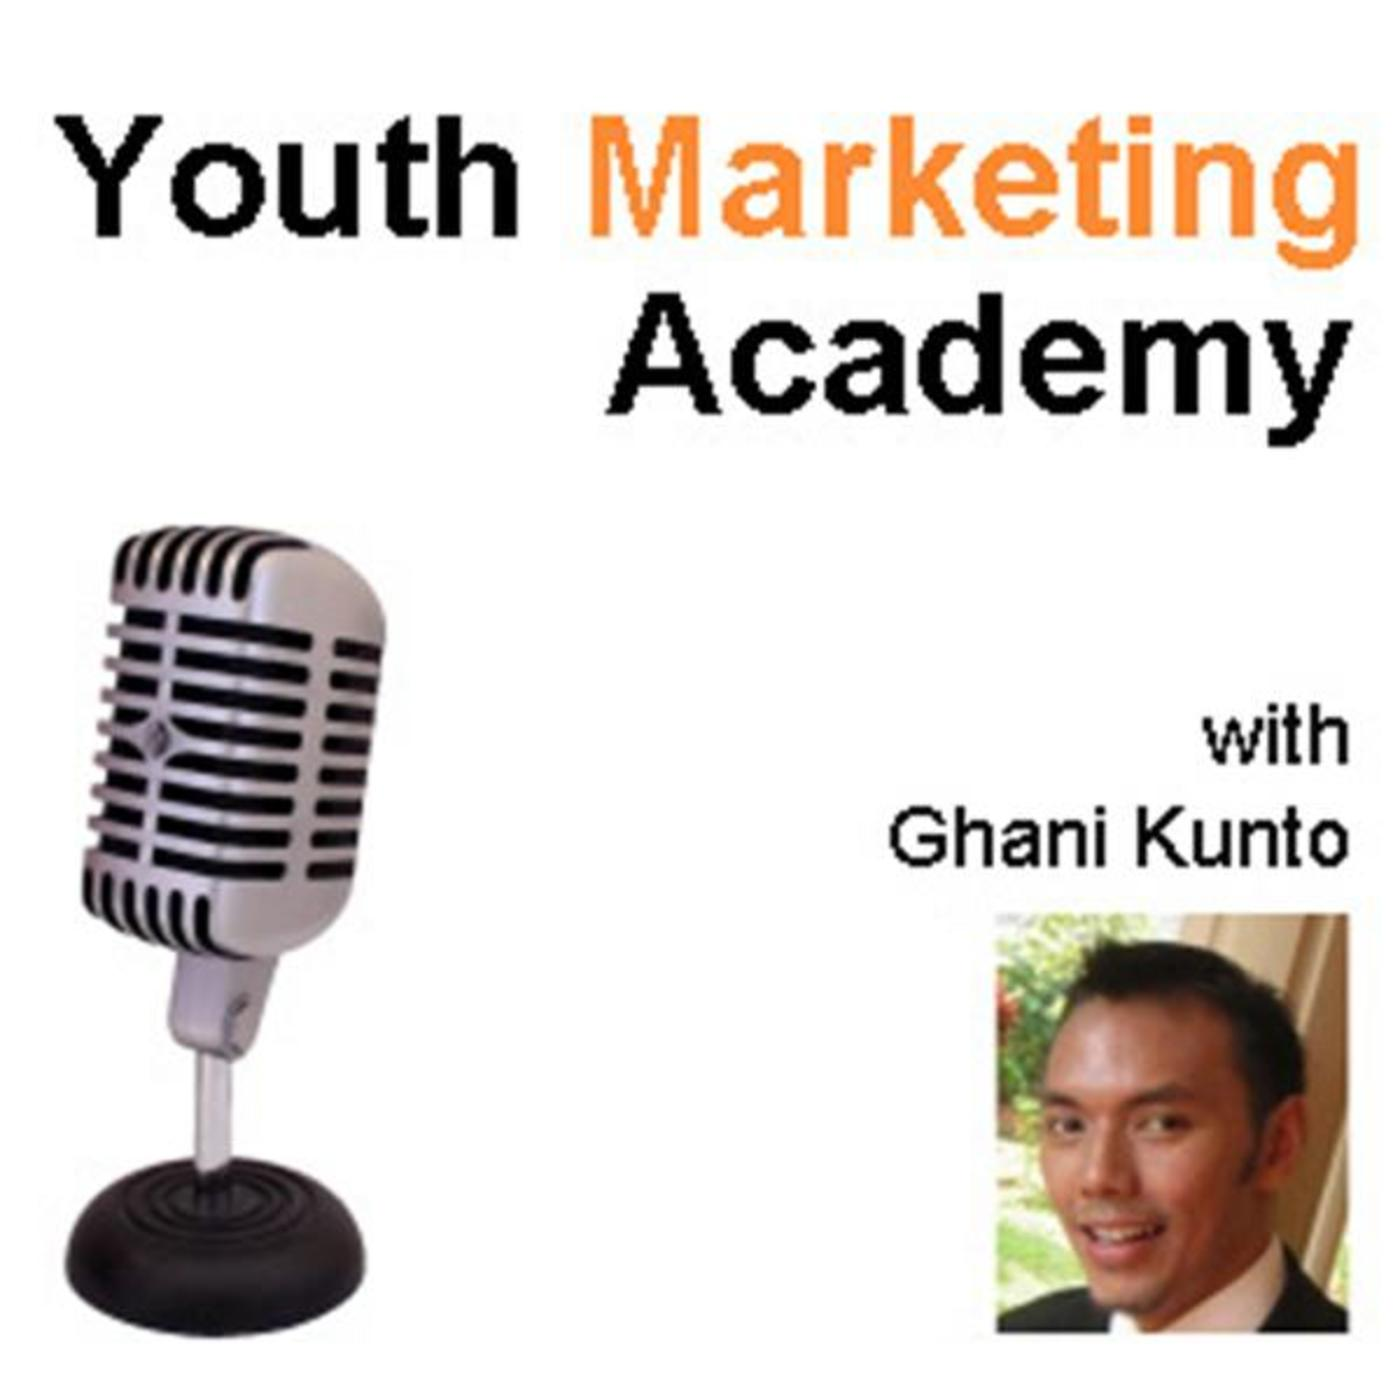 Youth Marketing Academy